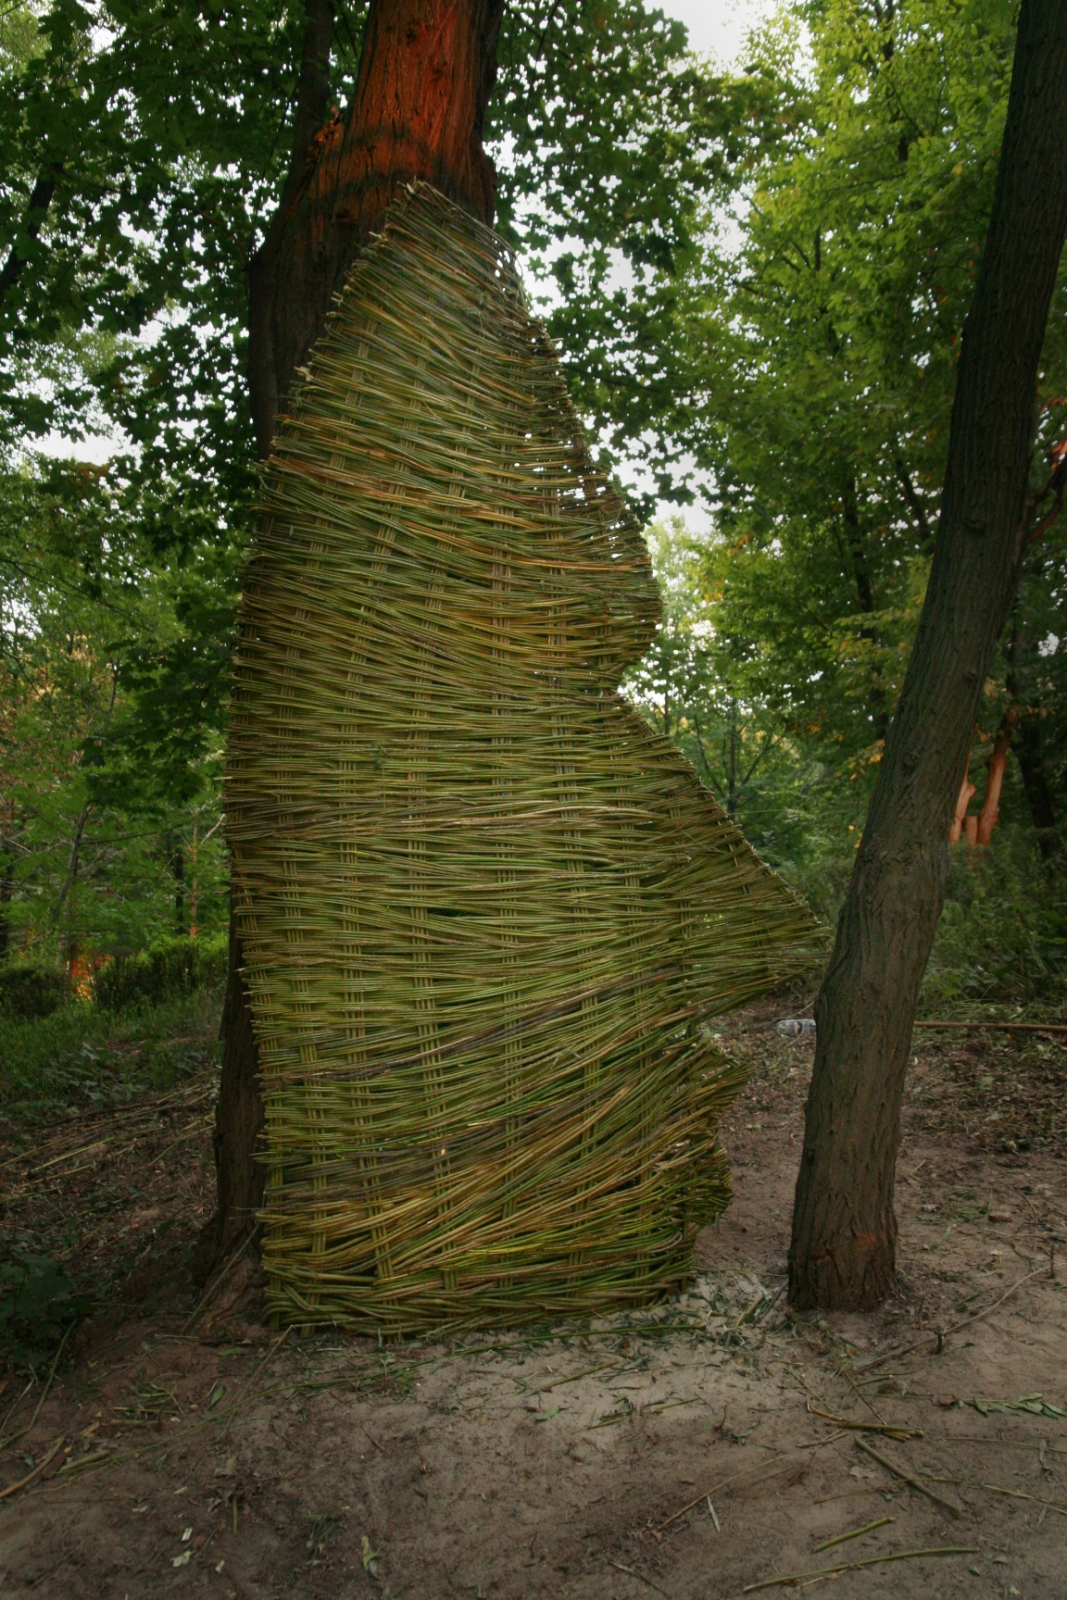 Facing, Wicker, 2007, Botanic Gardens, Kiev, Ukraine